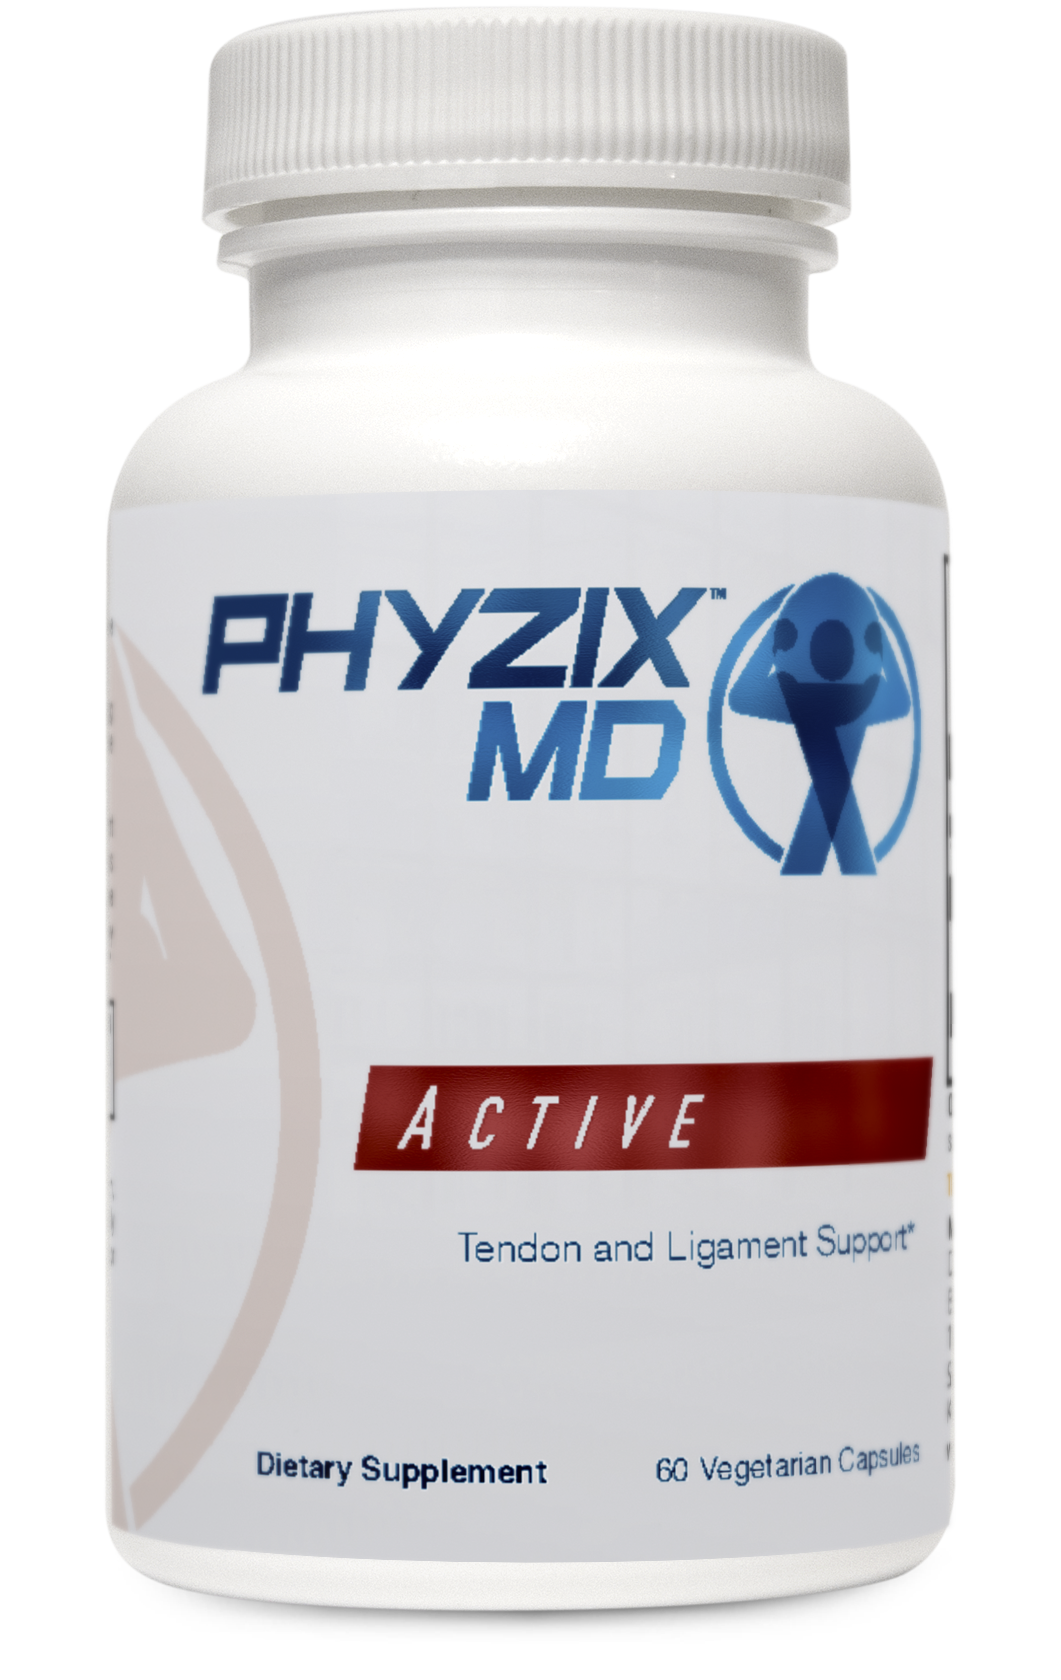 Active is another Phyzix MD product to help support healthy joints!